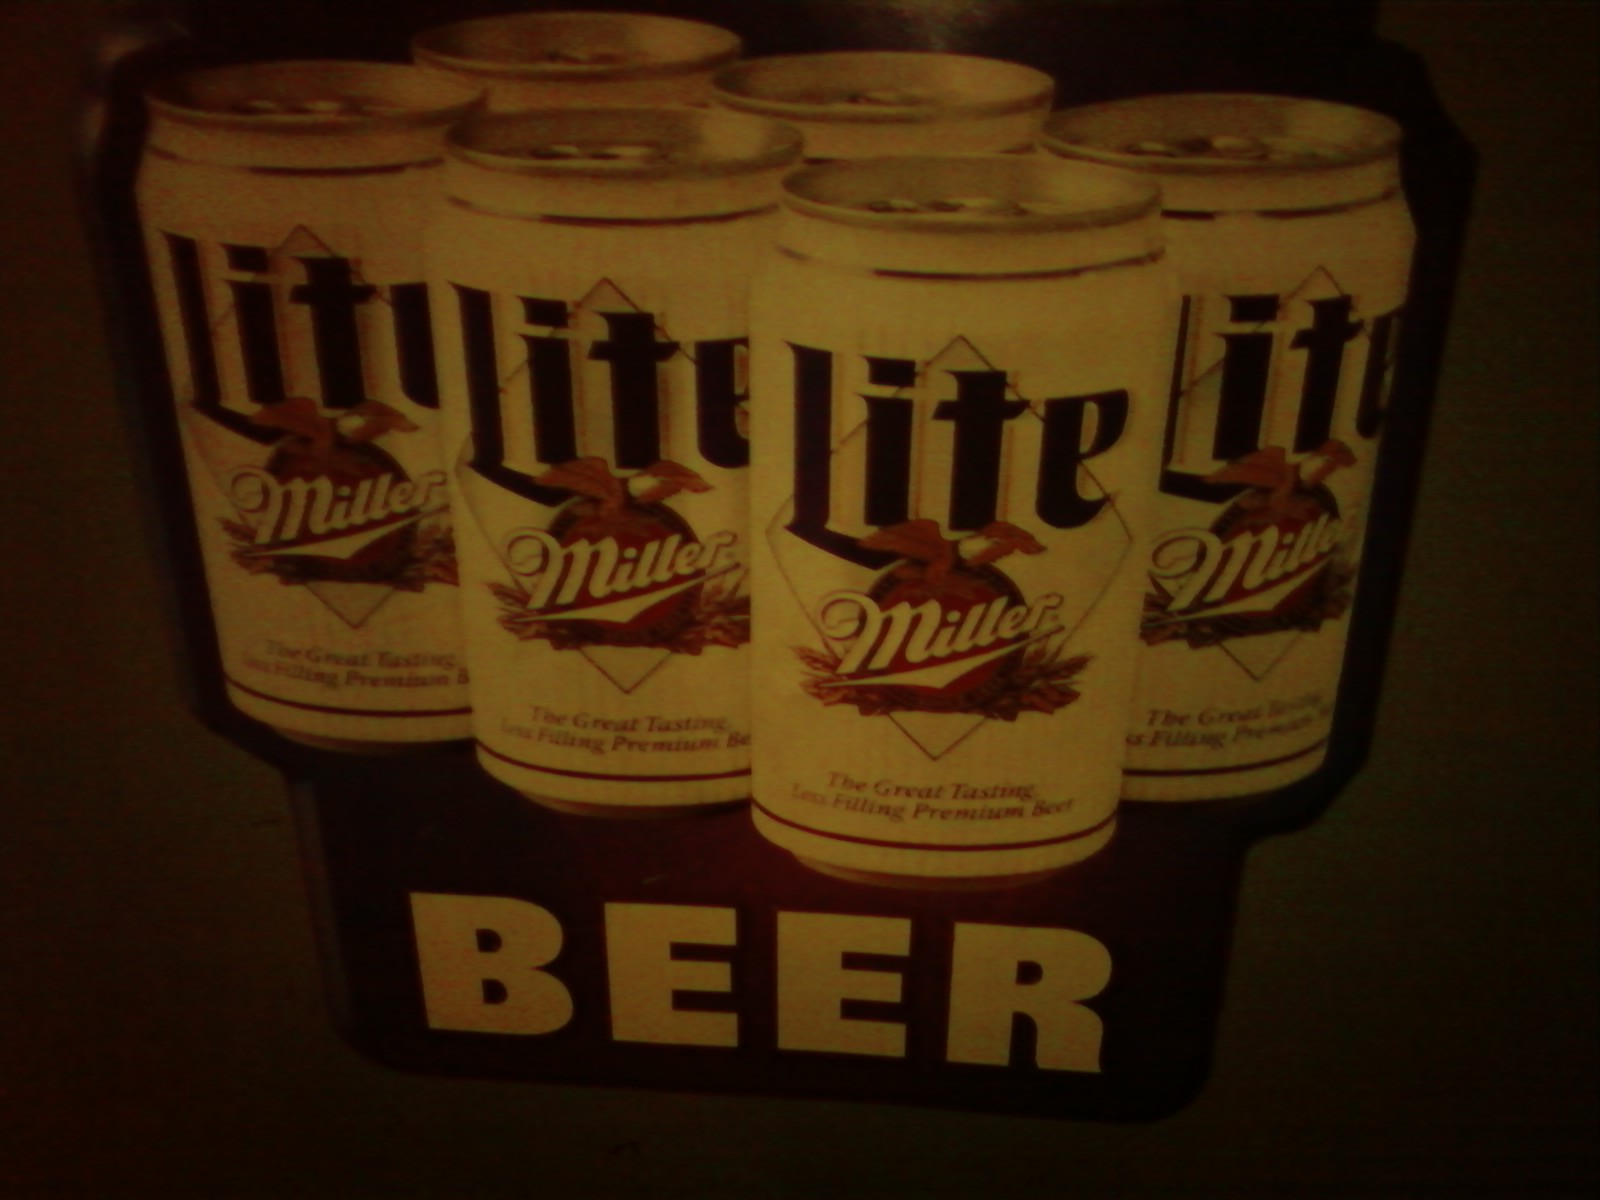 [The+miller+lite+my+parents+drank]